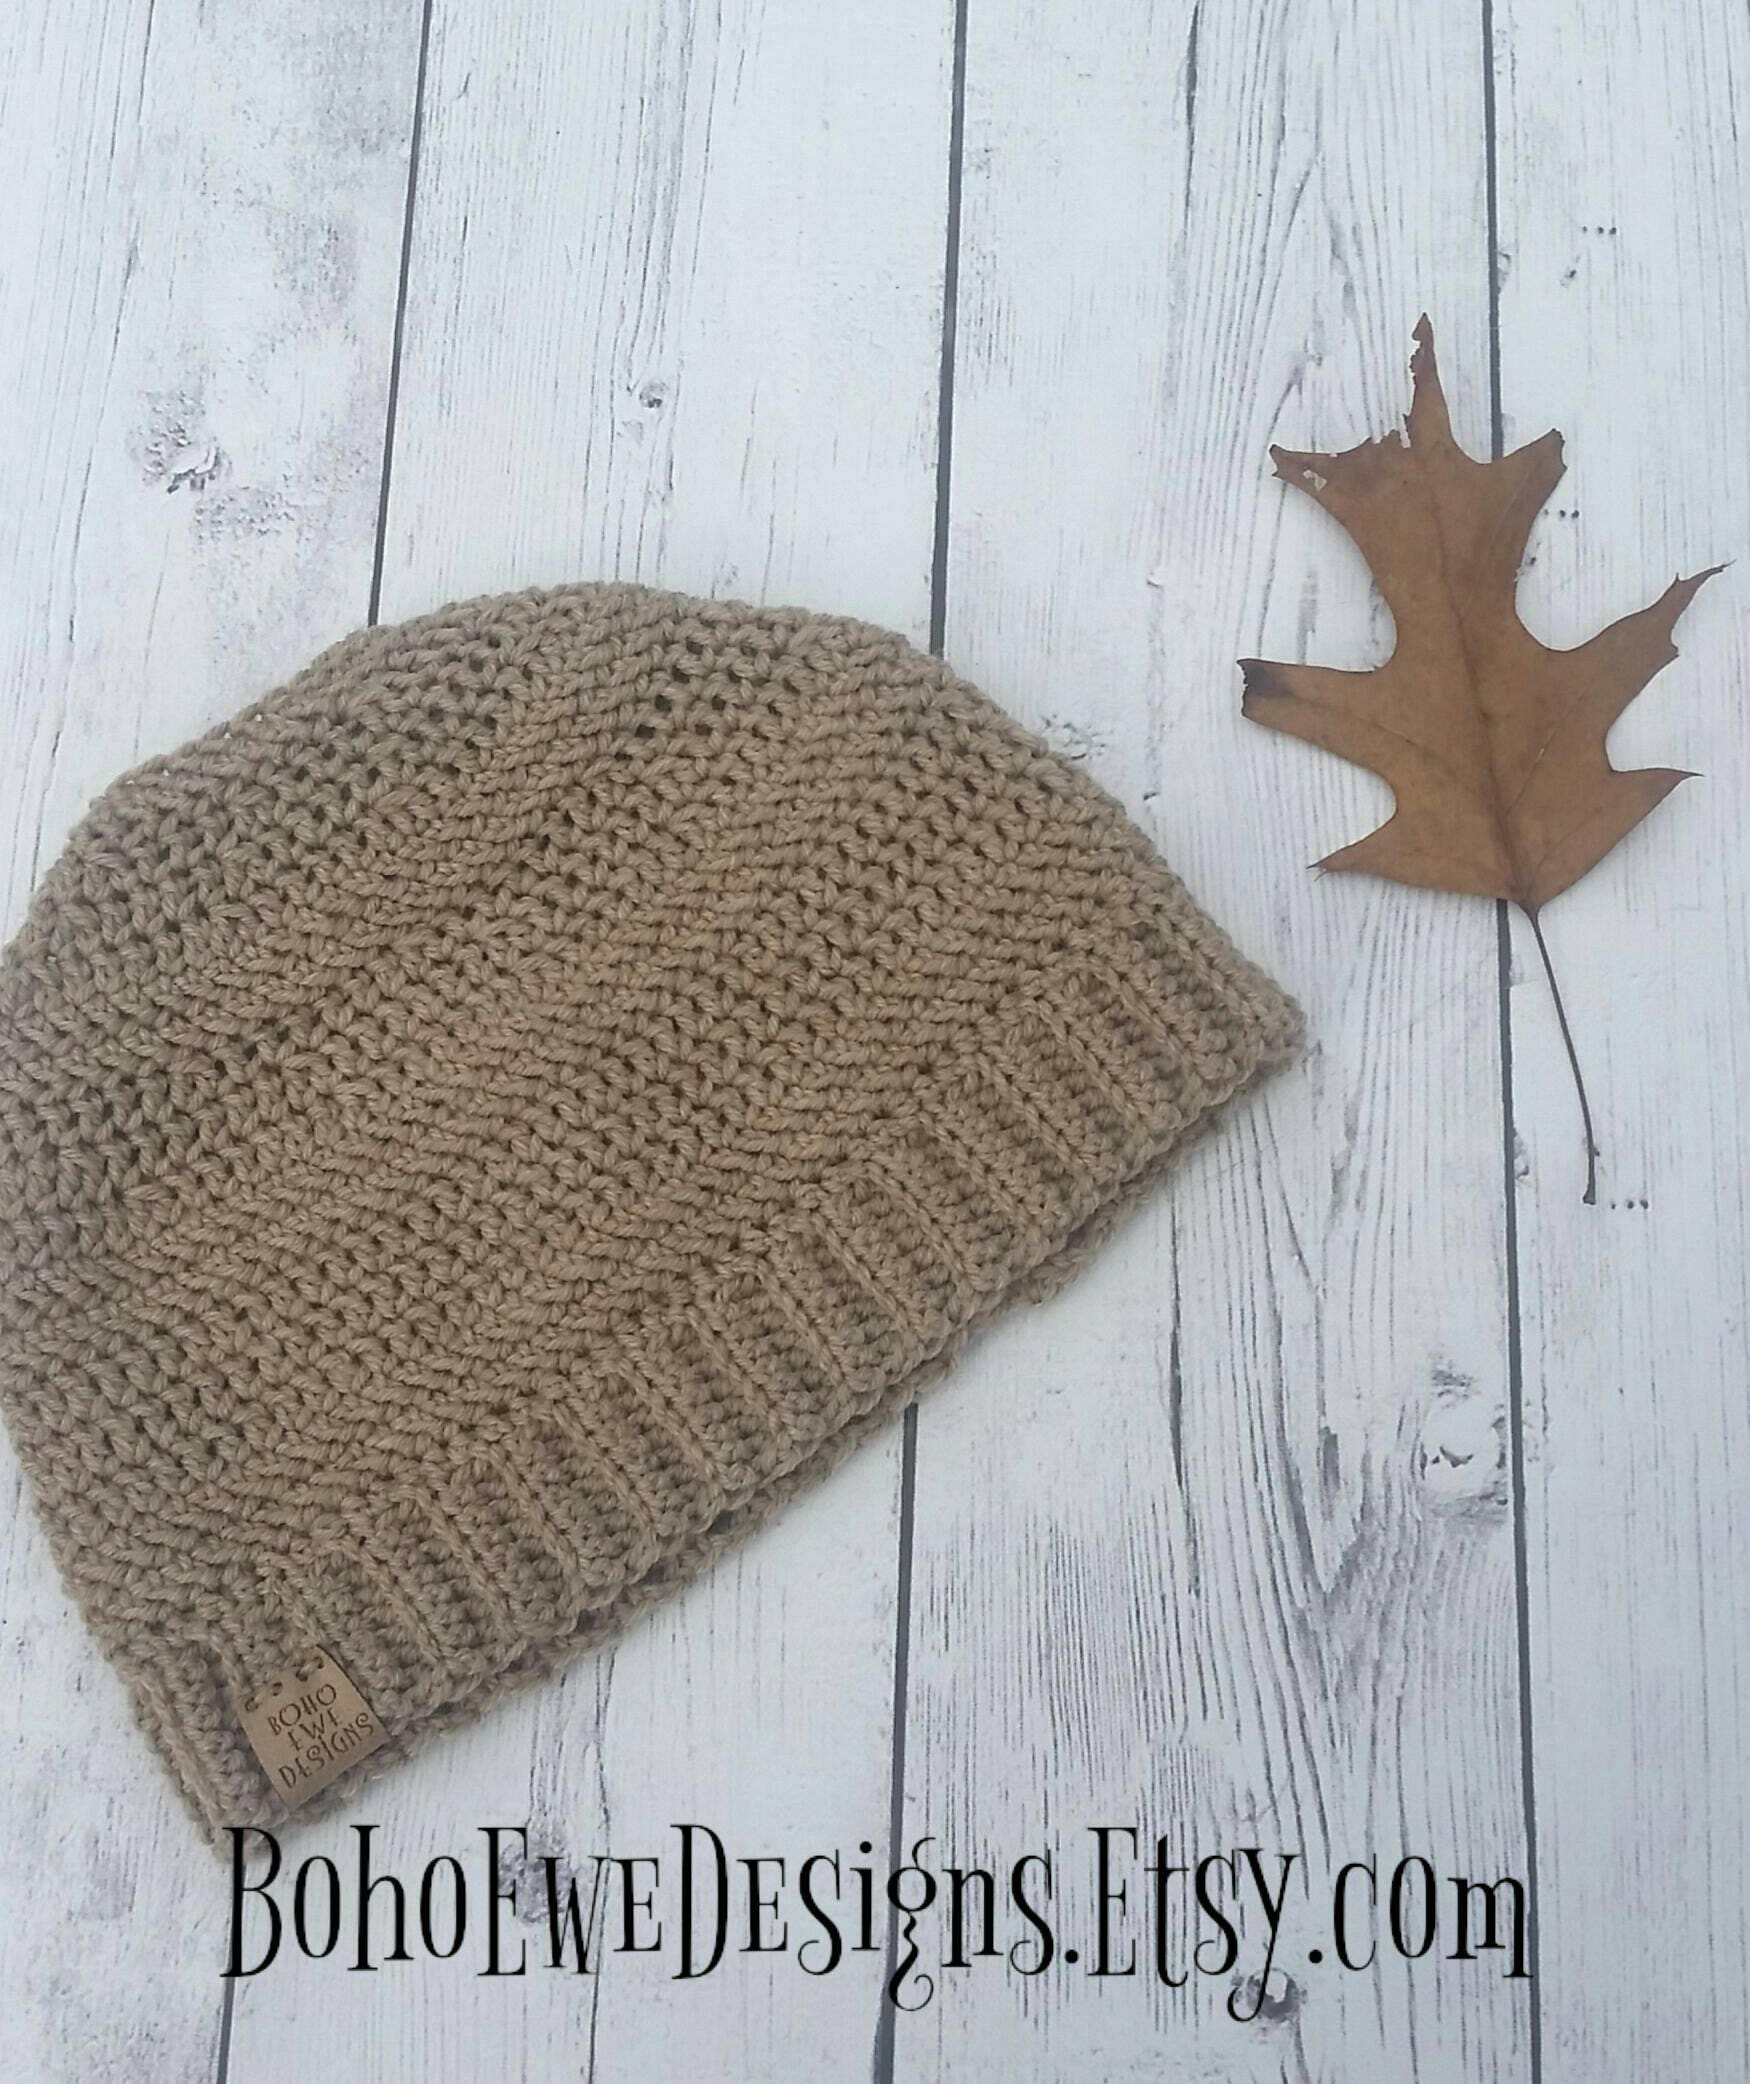 Messy Bun Beanie Hat made 100% Natural Superwash Wool, Ponytail Hat Opening for Hair, Top Knot Beanie, Various Solid Colors, Fits over Ears